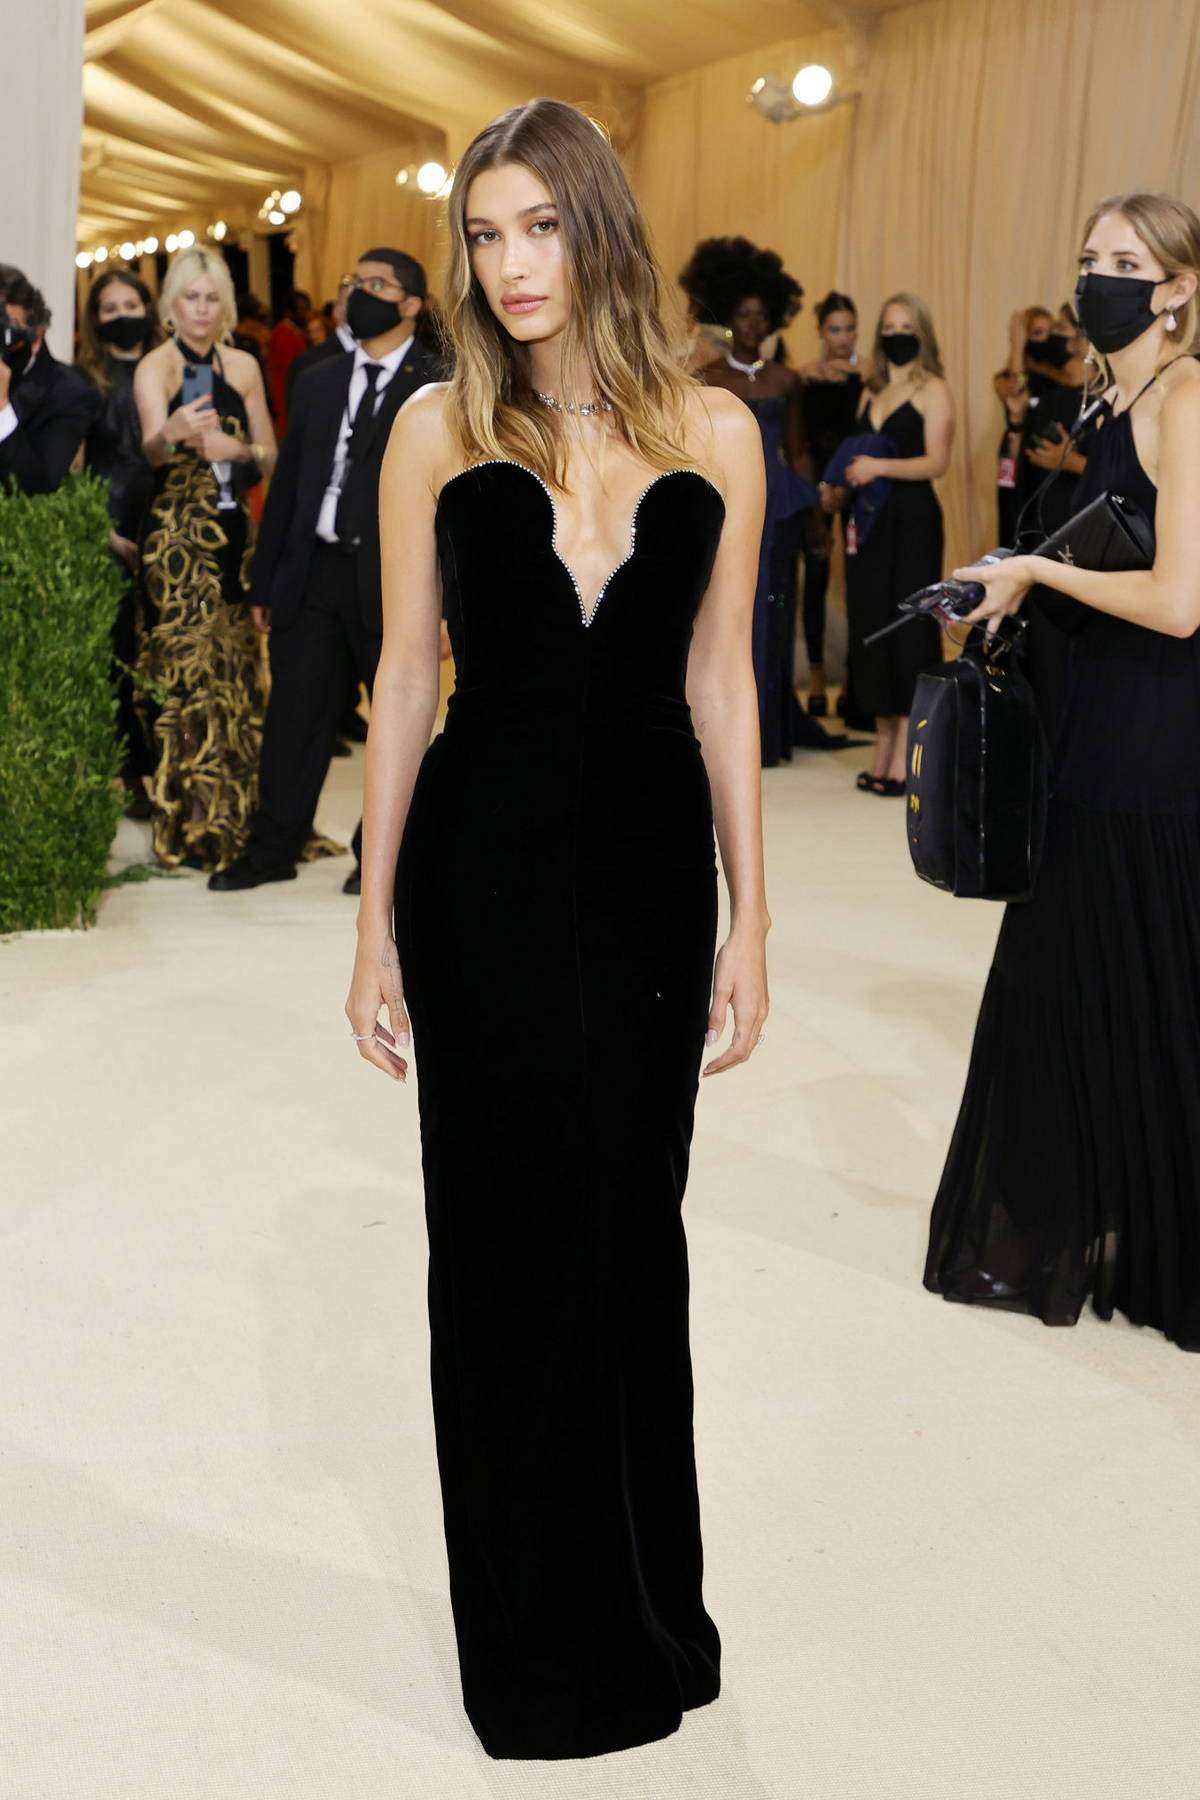 Hailey Bieber attends The Met Gala Celebrating In America: A Lexicon Of Fashion at Metropolitan Museum of Art in New York City